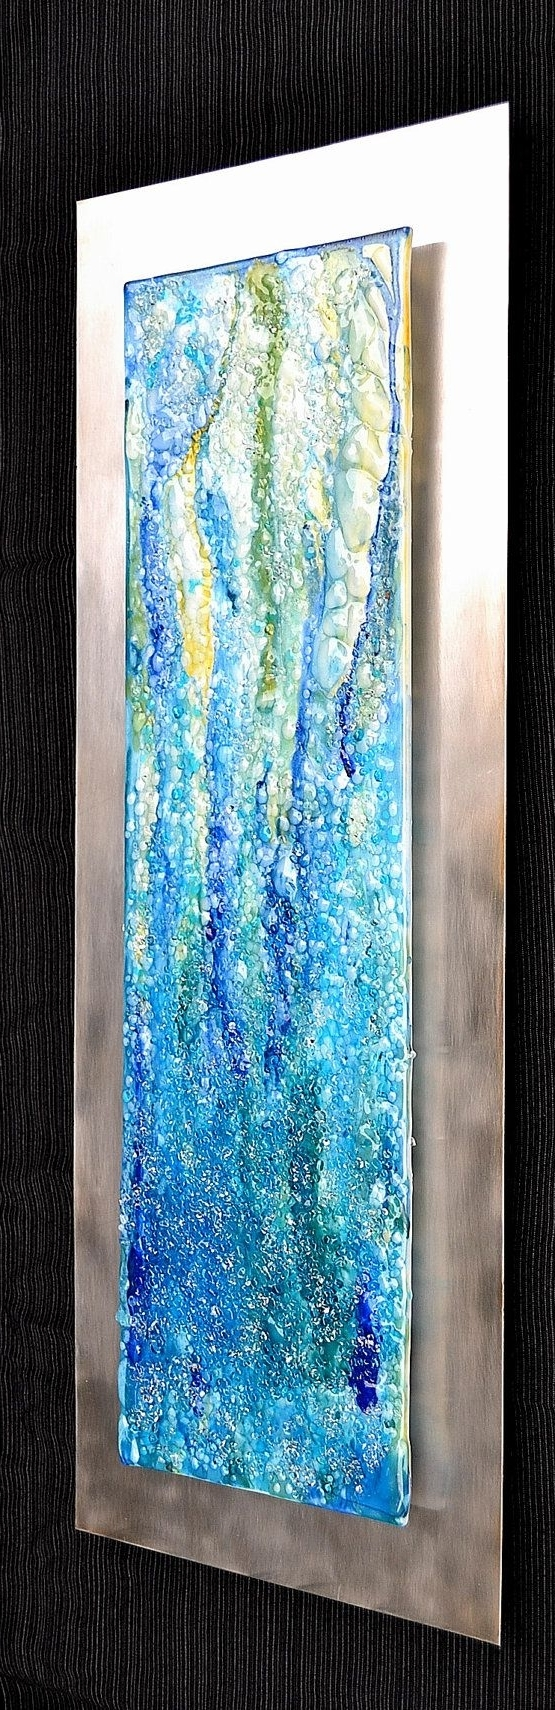 Waterfall – Modern Fused Glass Wall Hanging Art On Stainless Steel Intended For Well Known Glass Wall Art (View 15 of 15)